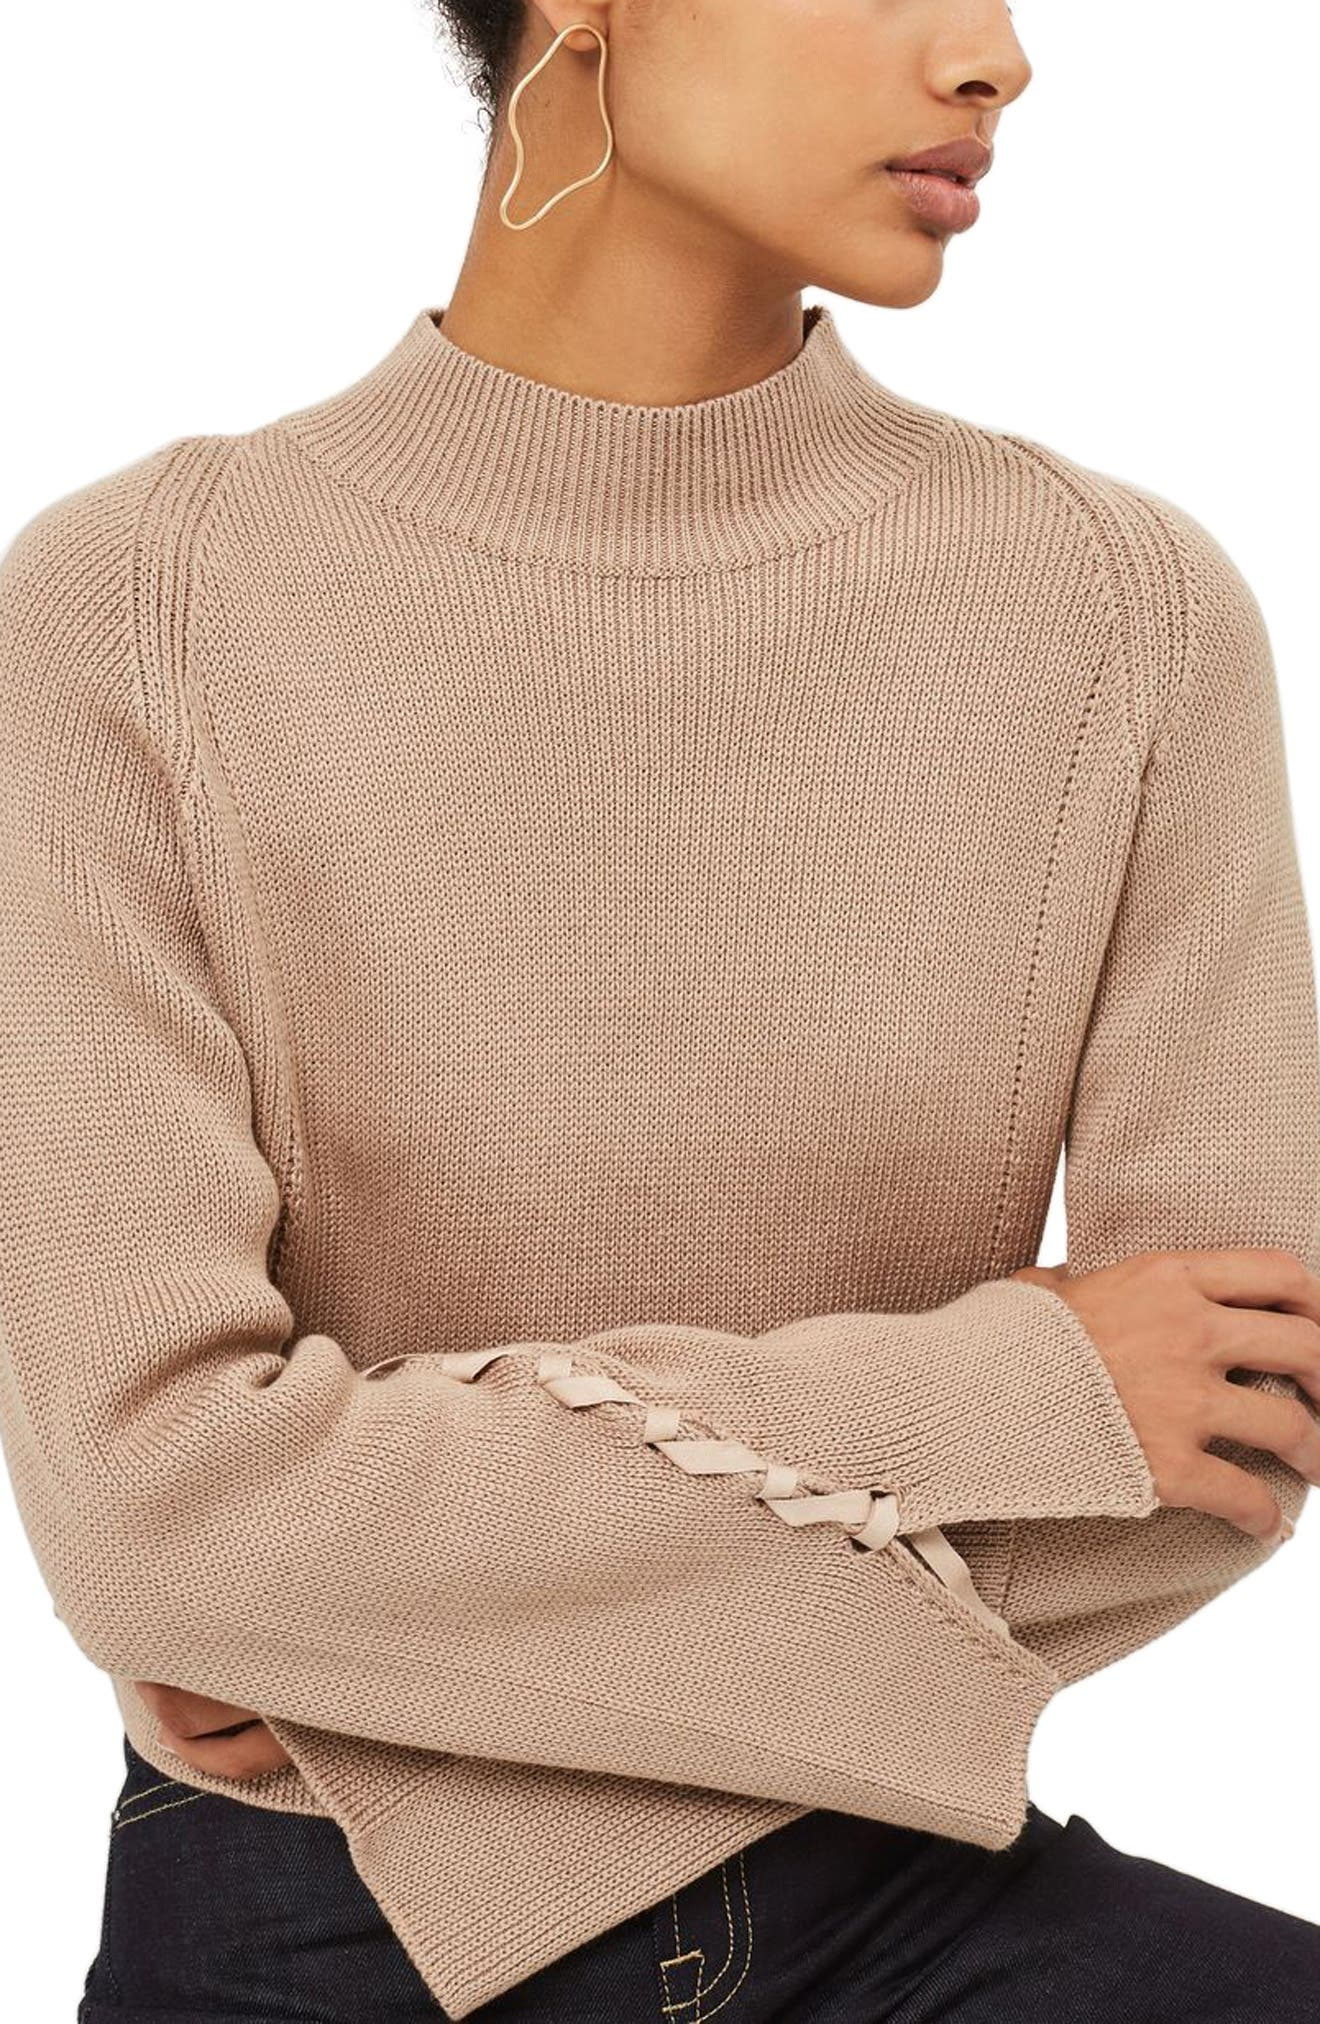 Lace Sleeve Funnel Neck Sweater,                             Main thumbnail 1, color,